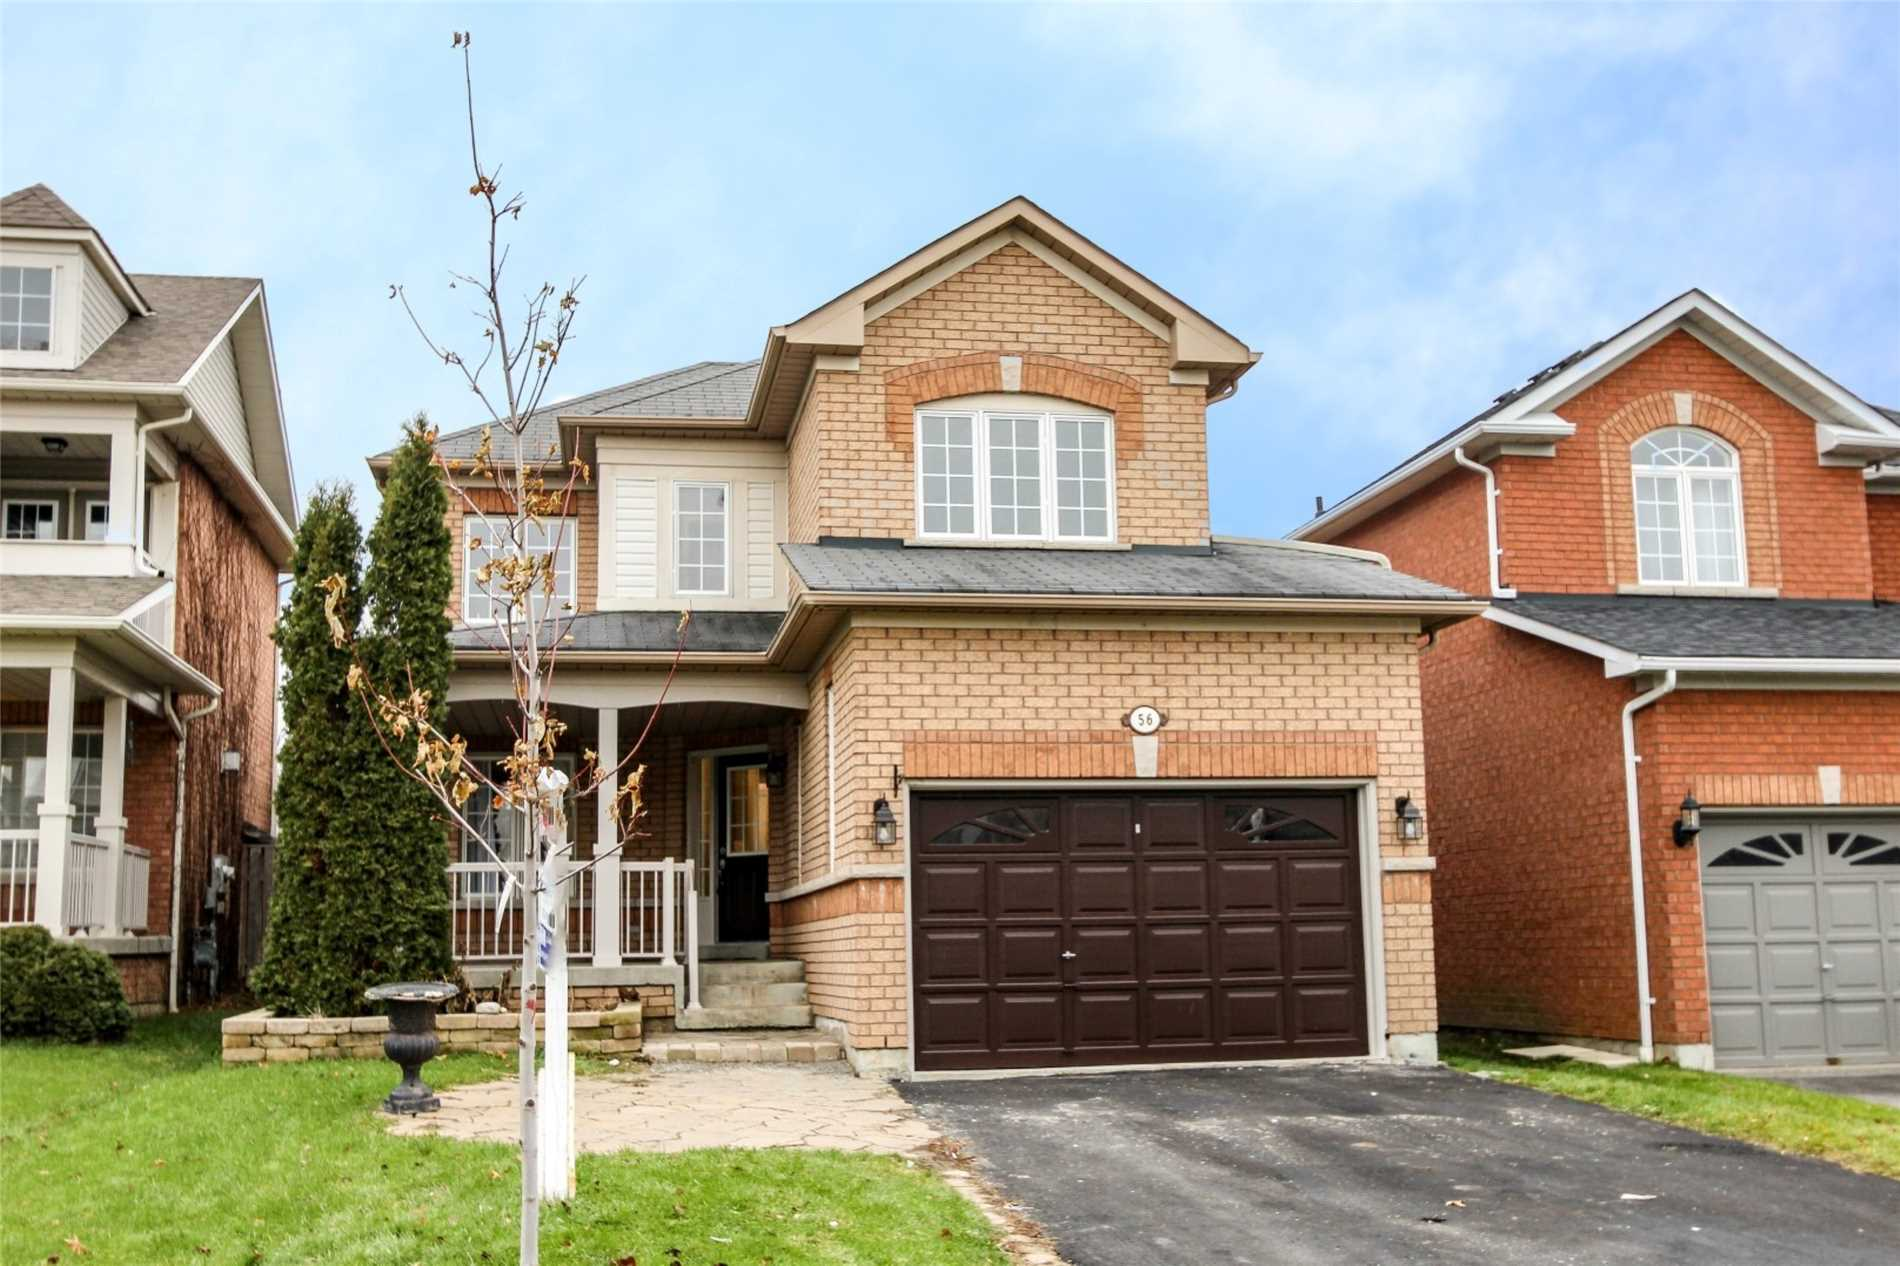 56 Fitzpatrick Crt, Whitby Ontario, Canada